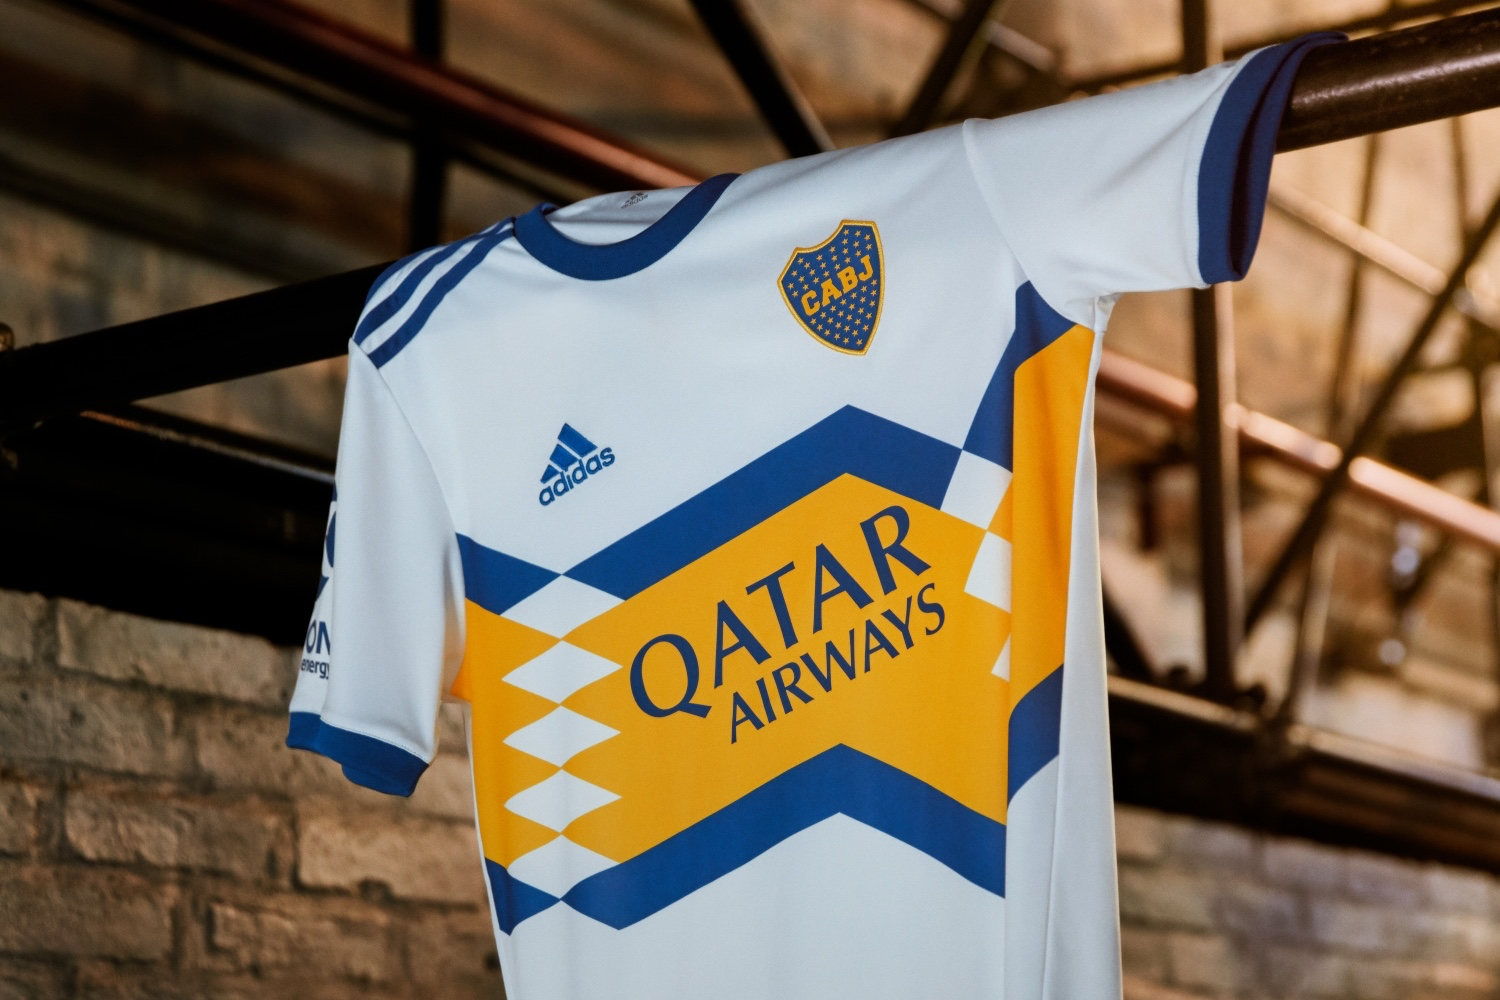 Boca Juniors 2020 Adidas Kits Released